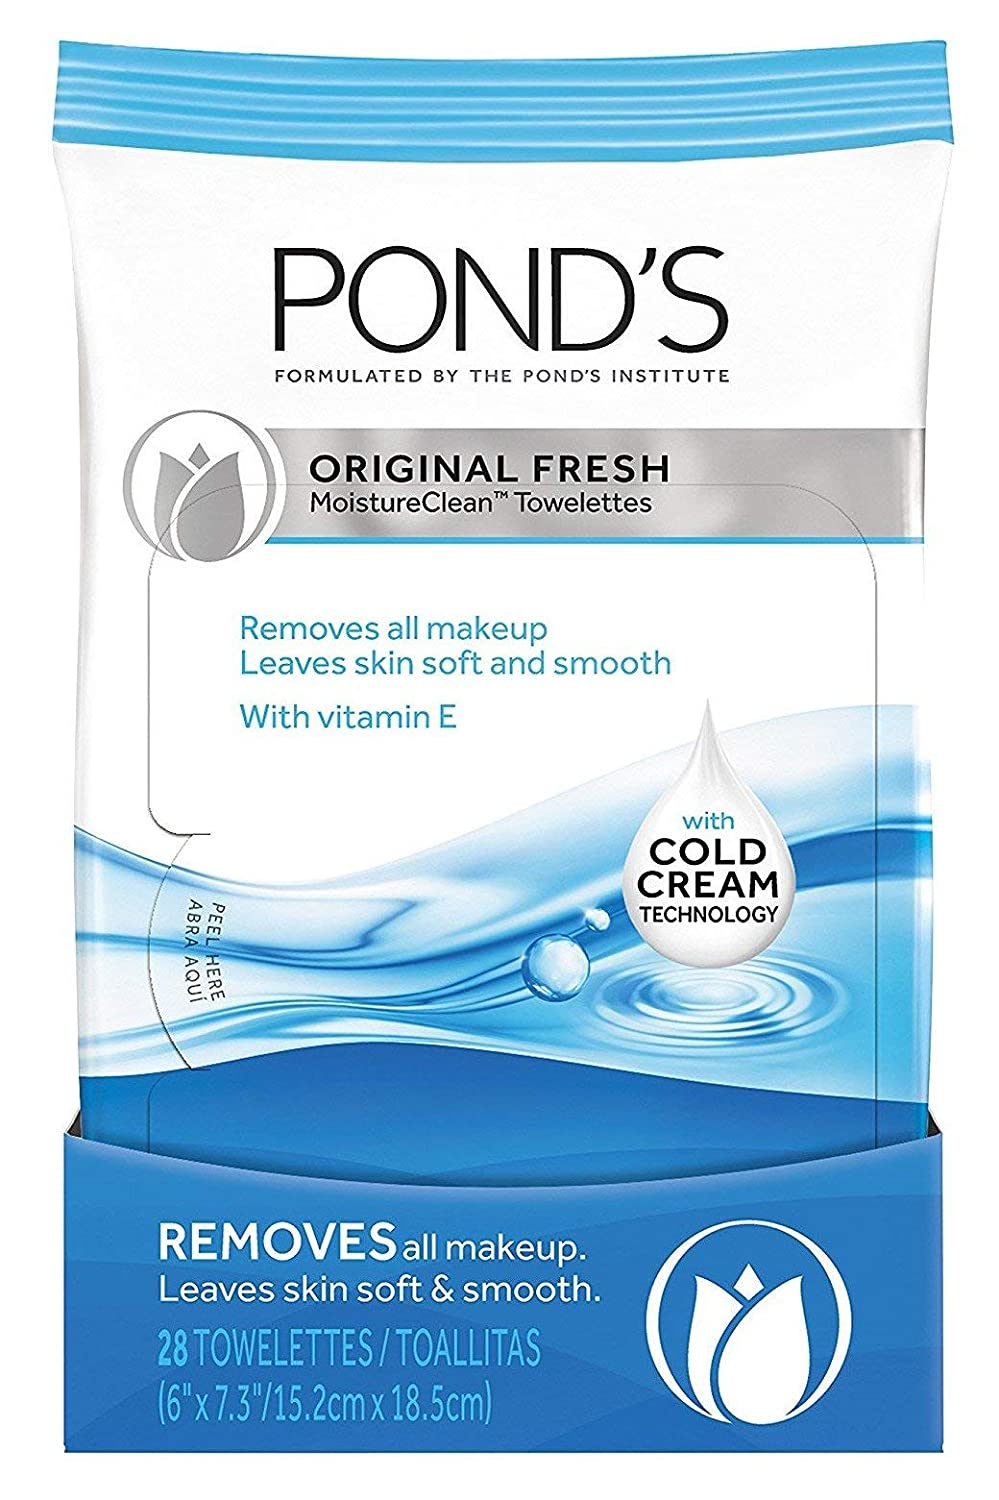 Ponds Towelettes Original Fresh 28 Count (30ml) (6 Pack)